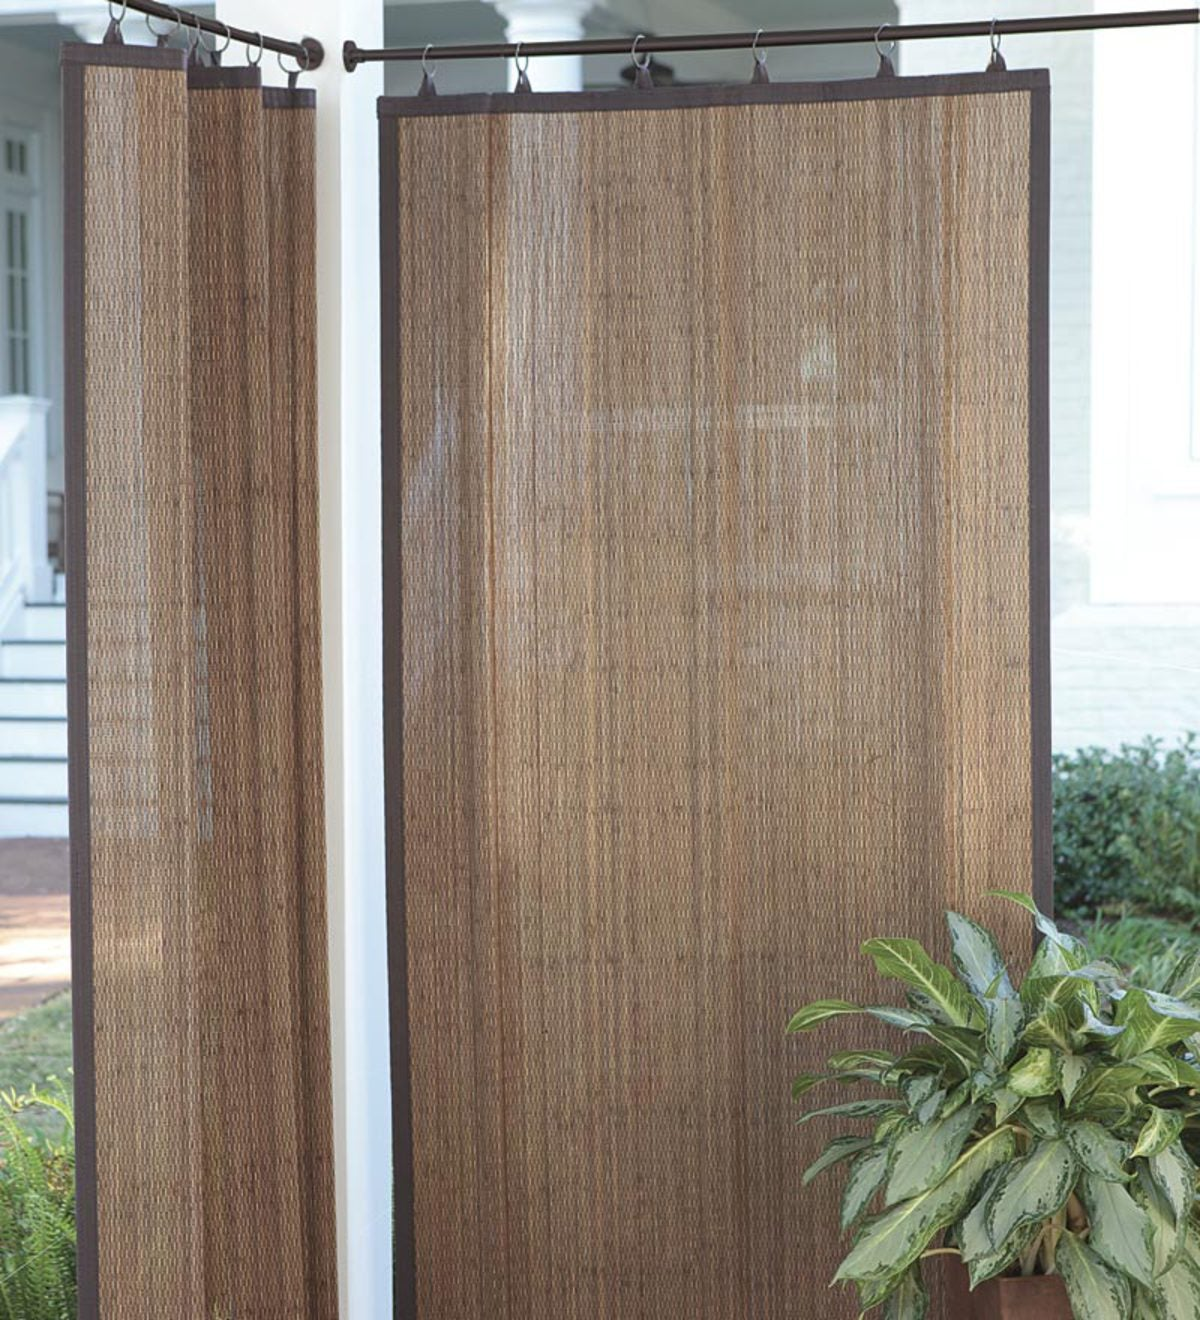 Outdoor Bamboo Curtain Panel 40 W X 63 L Plowhearth